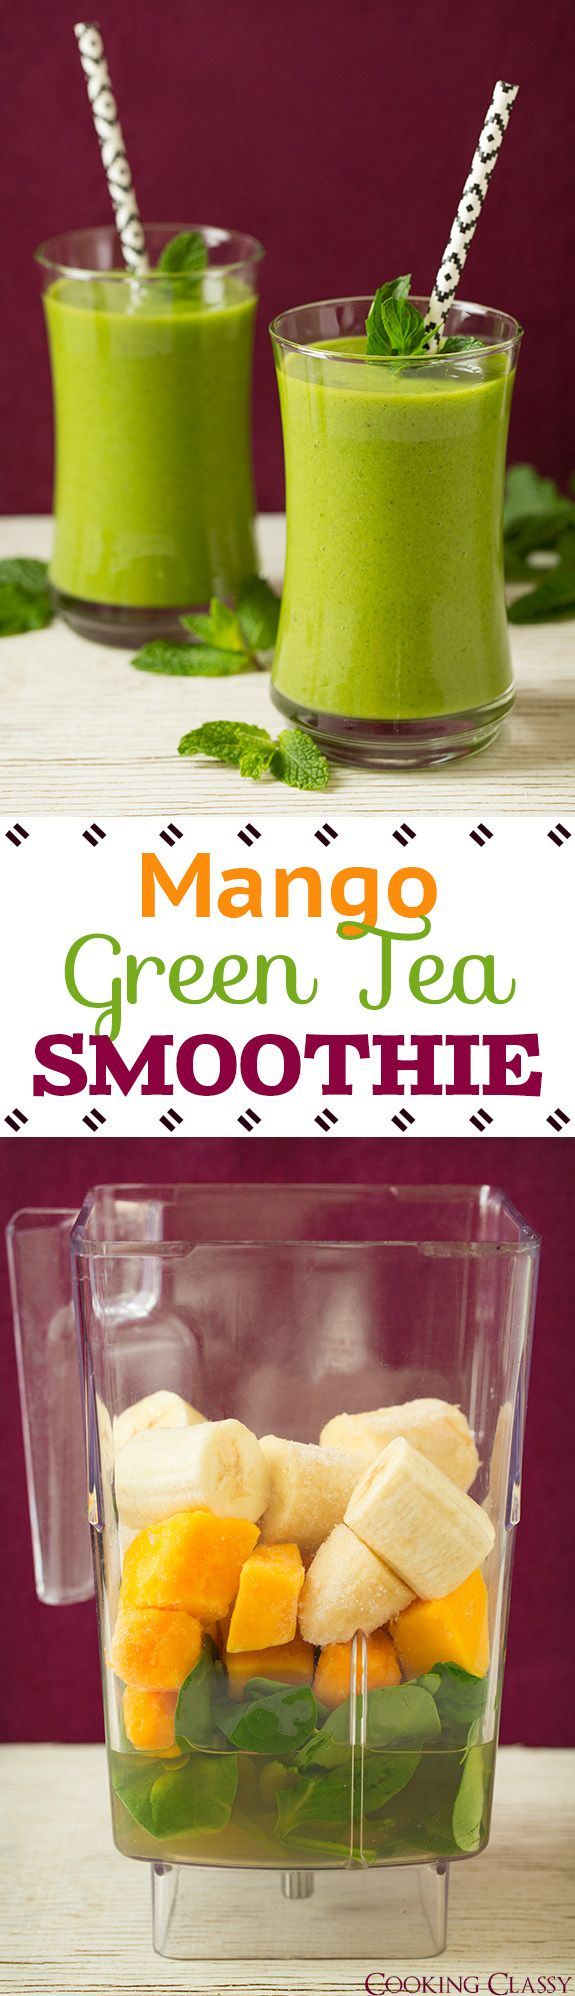 All Food and Drink: Mango Green Tea Smoothie - Cooking Classy